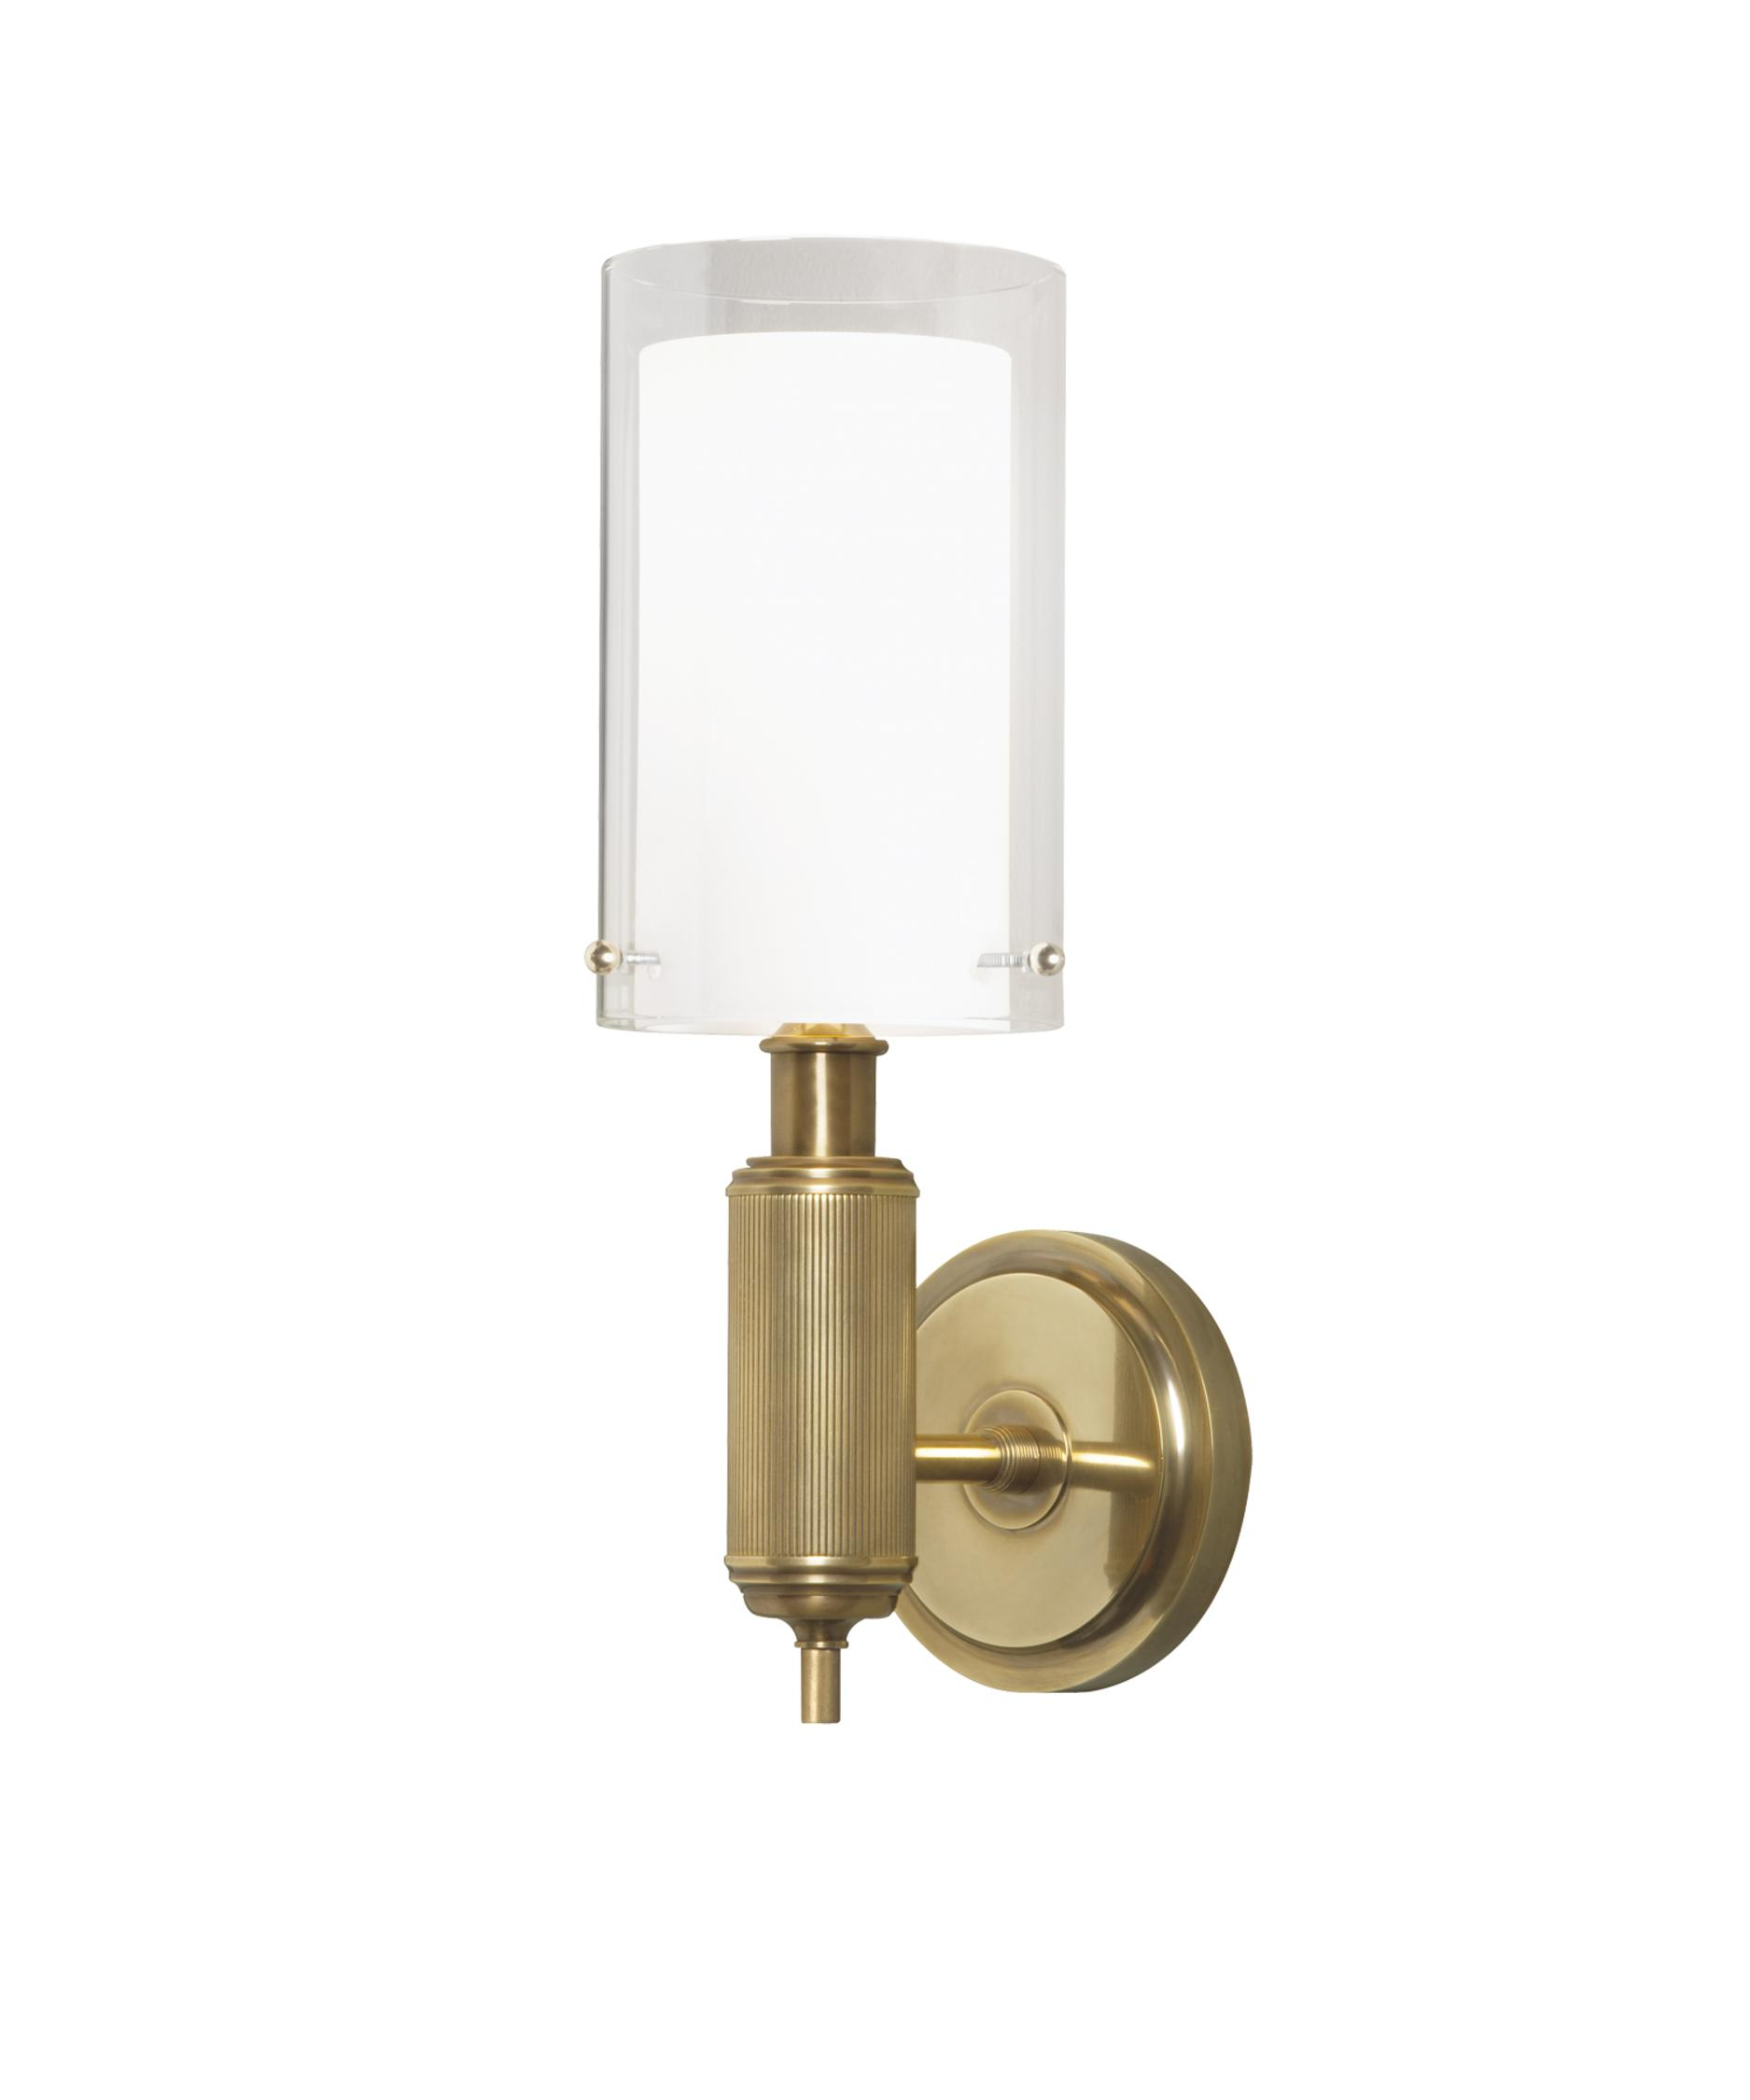 Wall Sconces With Switches Wall Sconce With Switch Bindu Bhatia Astrology